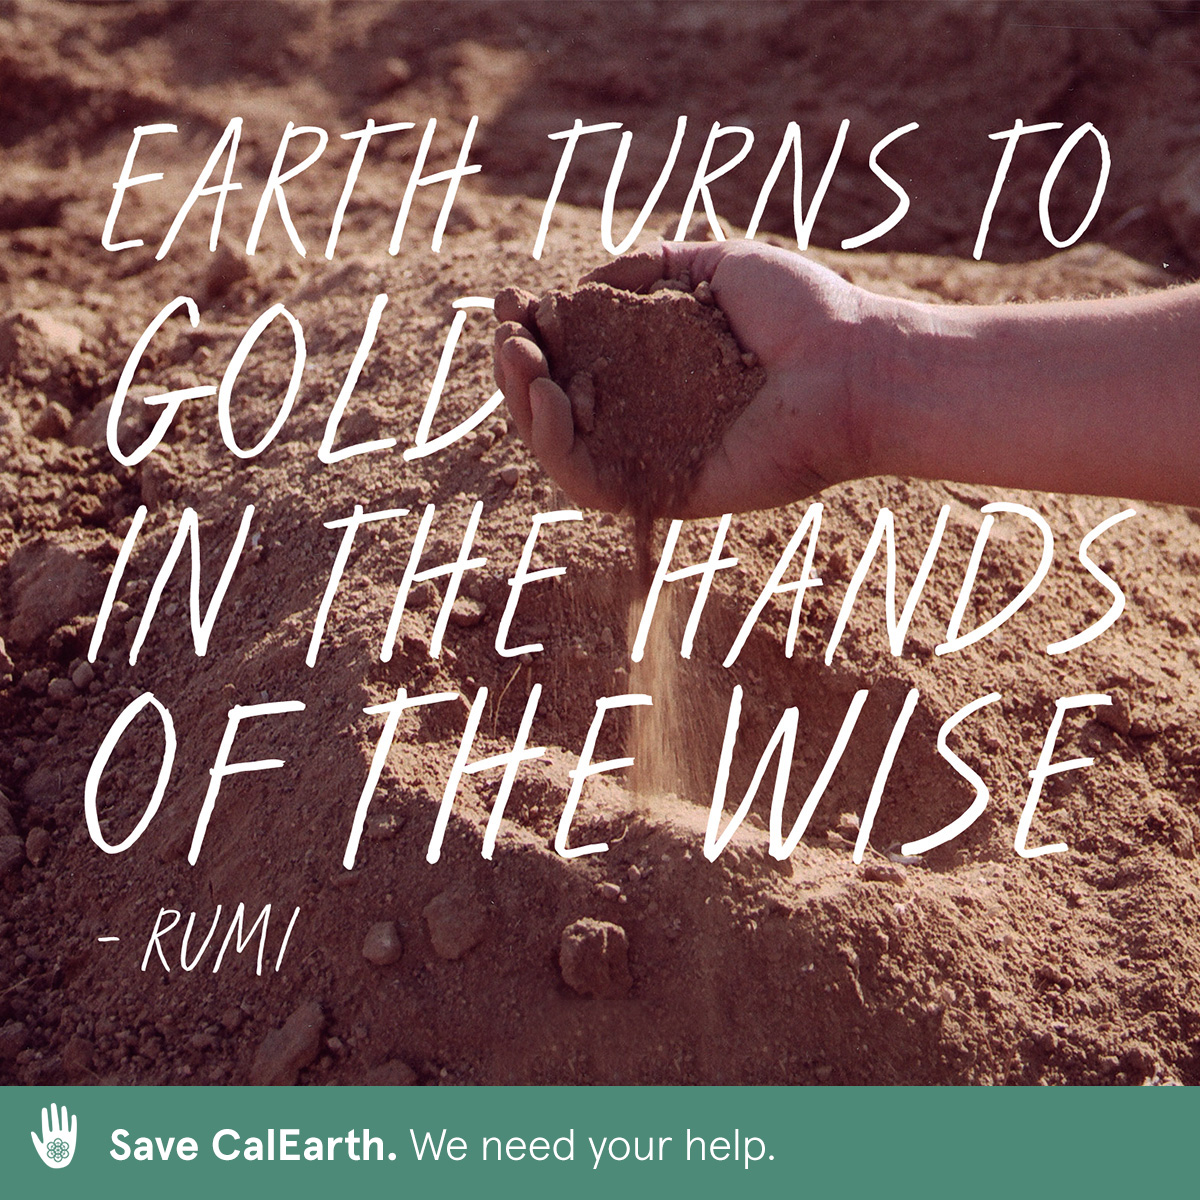 Your donation allows CalEarth to educate people to build using the SuperAdobe method and help save the planet we all share. Help save CalEarth and make this powerful tool accessible to even more people worldwide.  calearth.org/donate   #calearth #savecalearth #superadobe